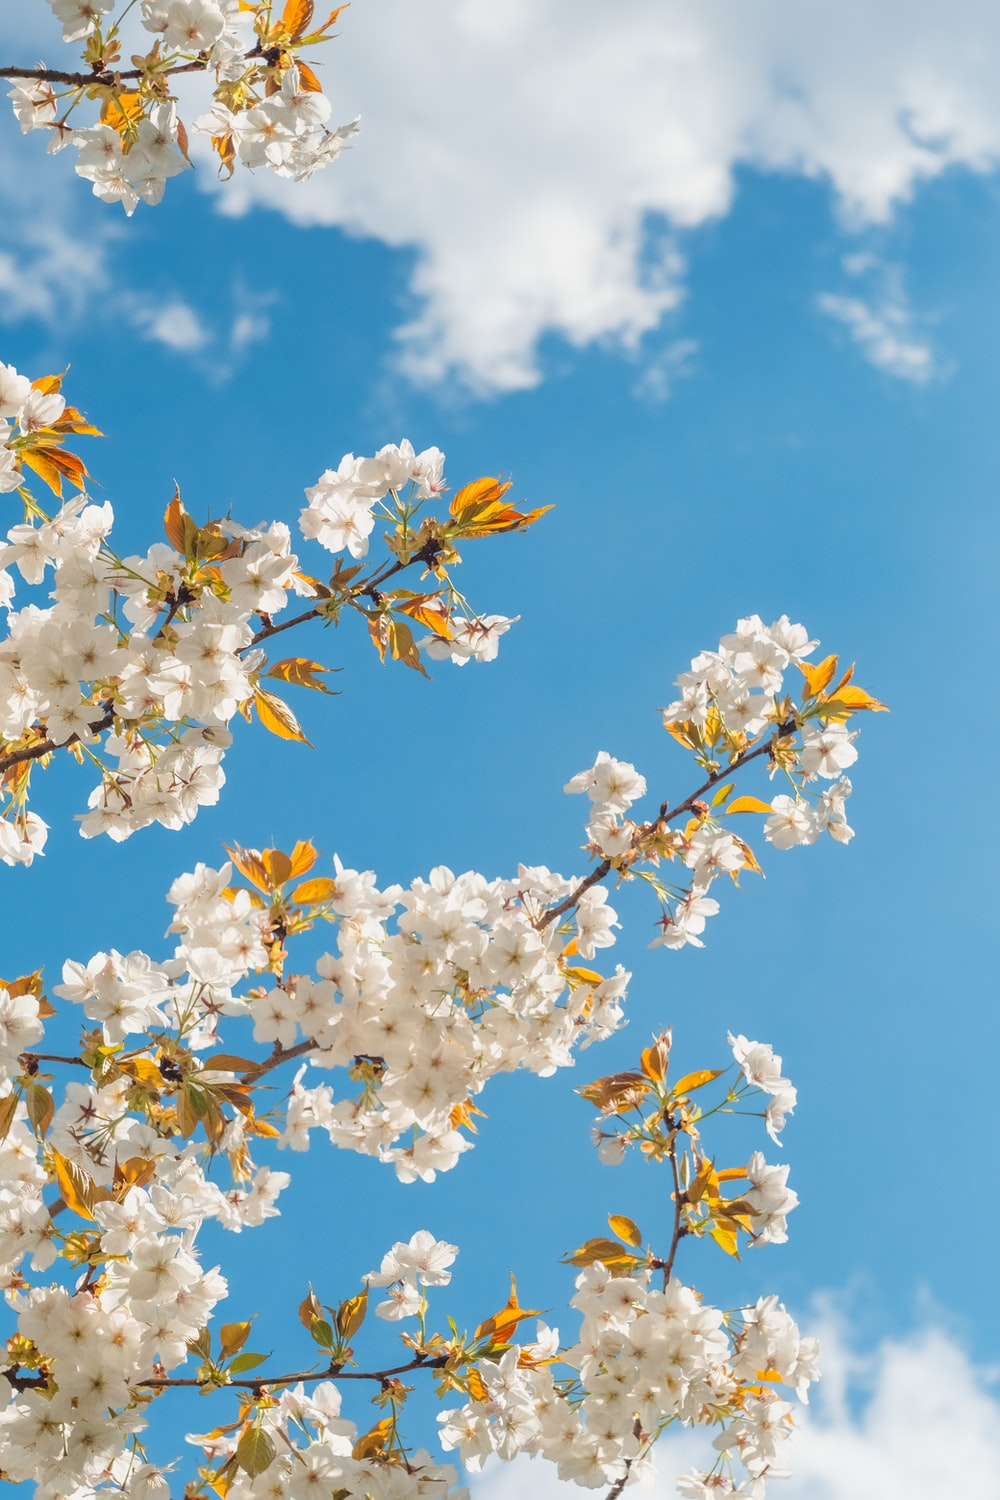 white and yellow flower under blue sky during daytime